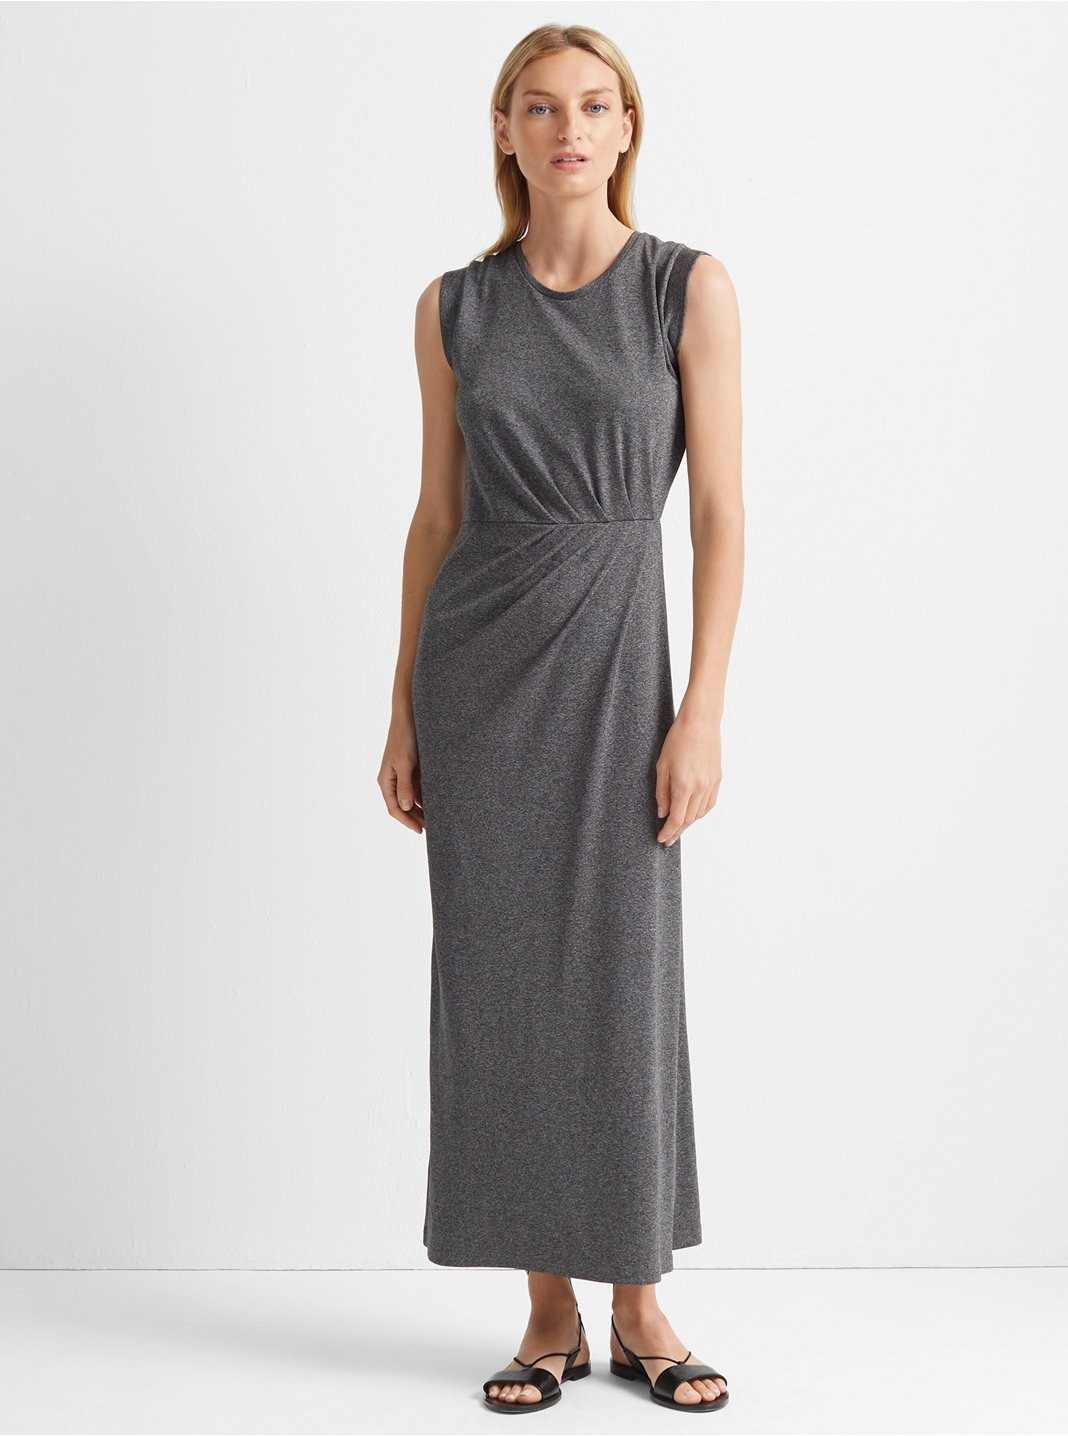 aea0d4181cfd2 Womens Dresses | Club Monaco